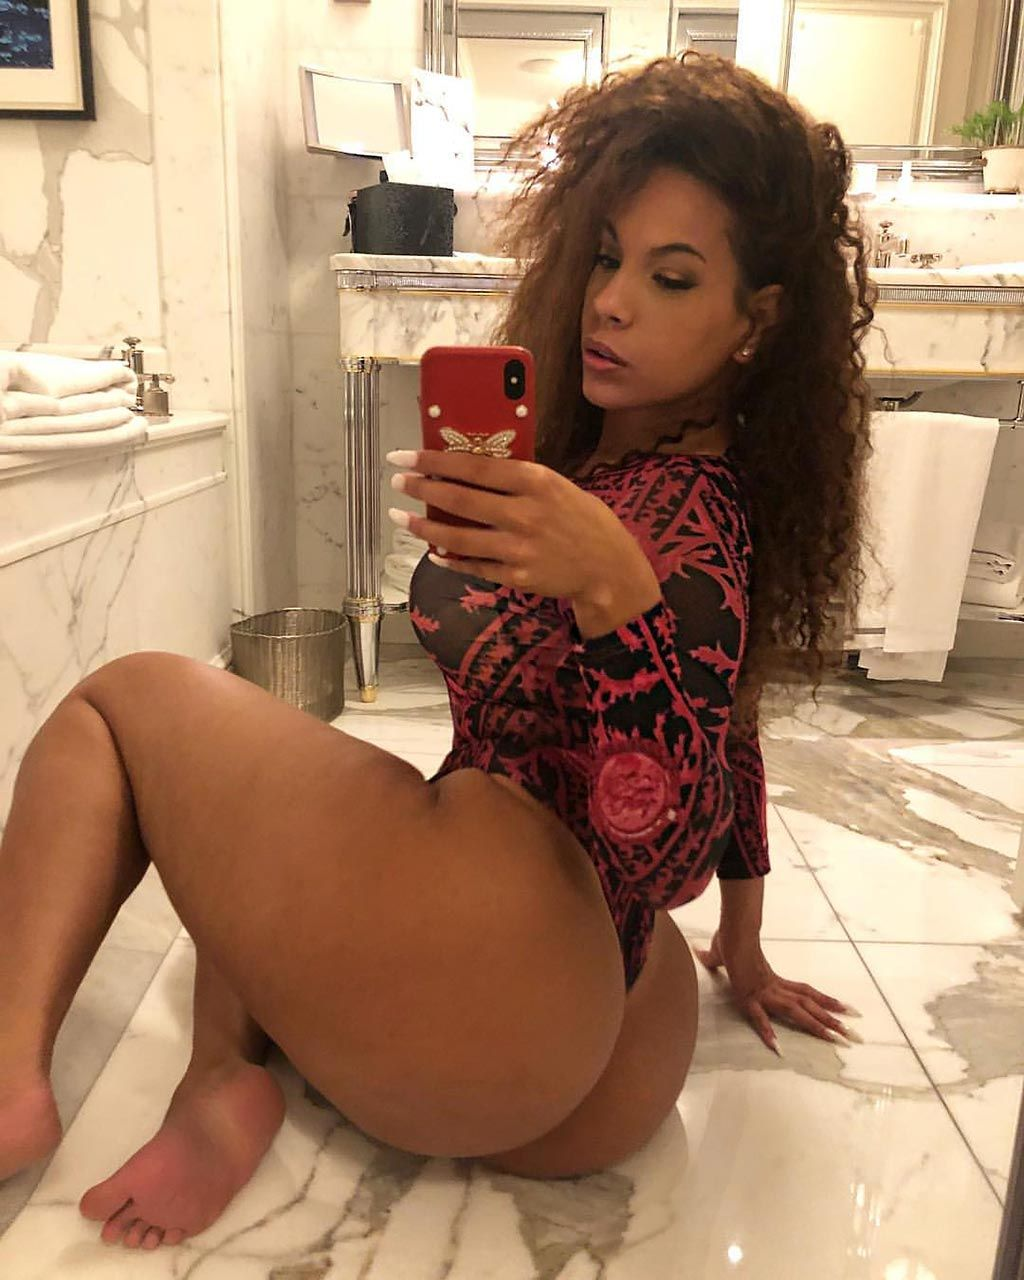 Amirah Dyme leaked nude photos and video